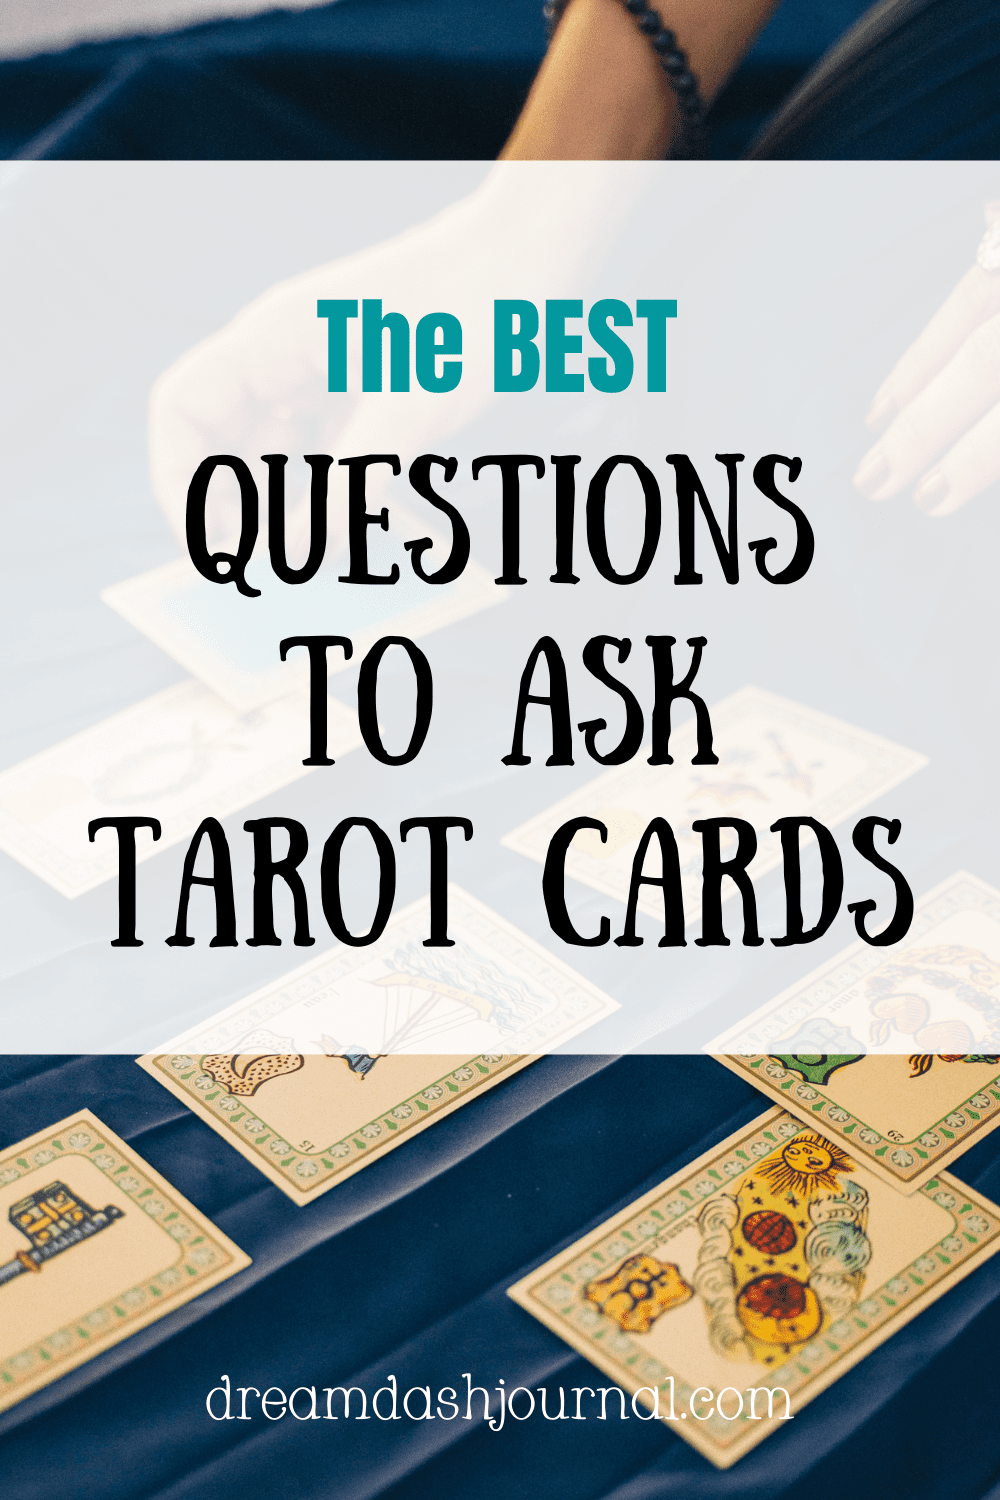 The Best Questions to Ask Tarot Cards {Ultimate List for An Accurate Reading!}